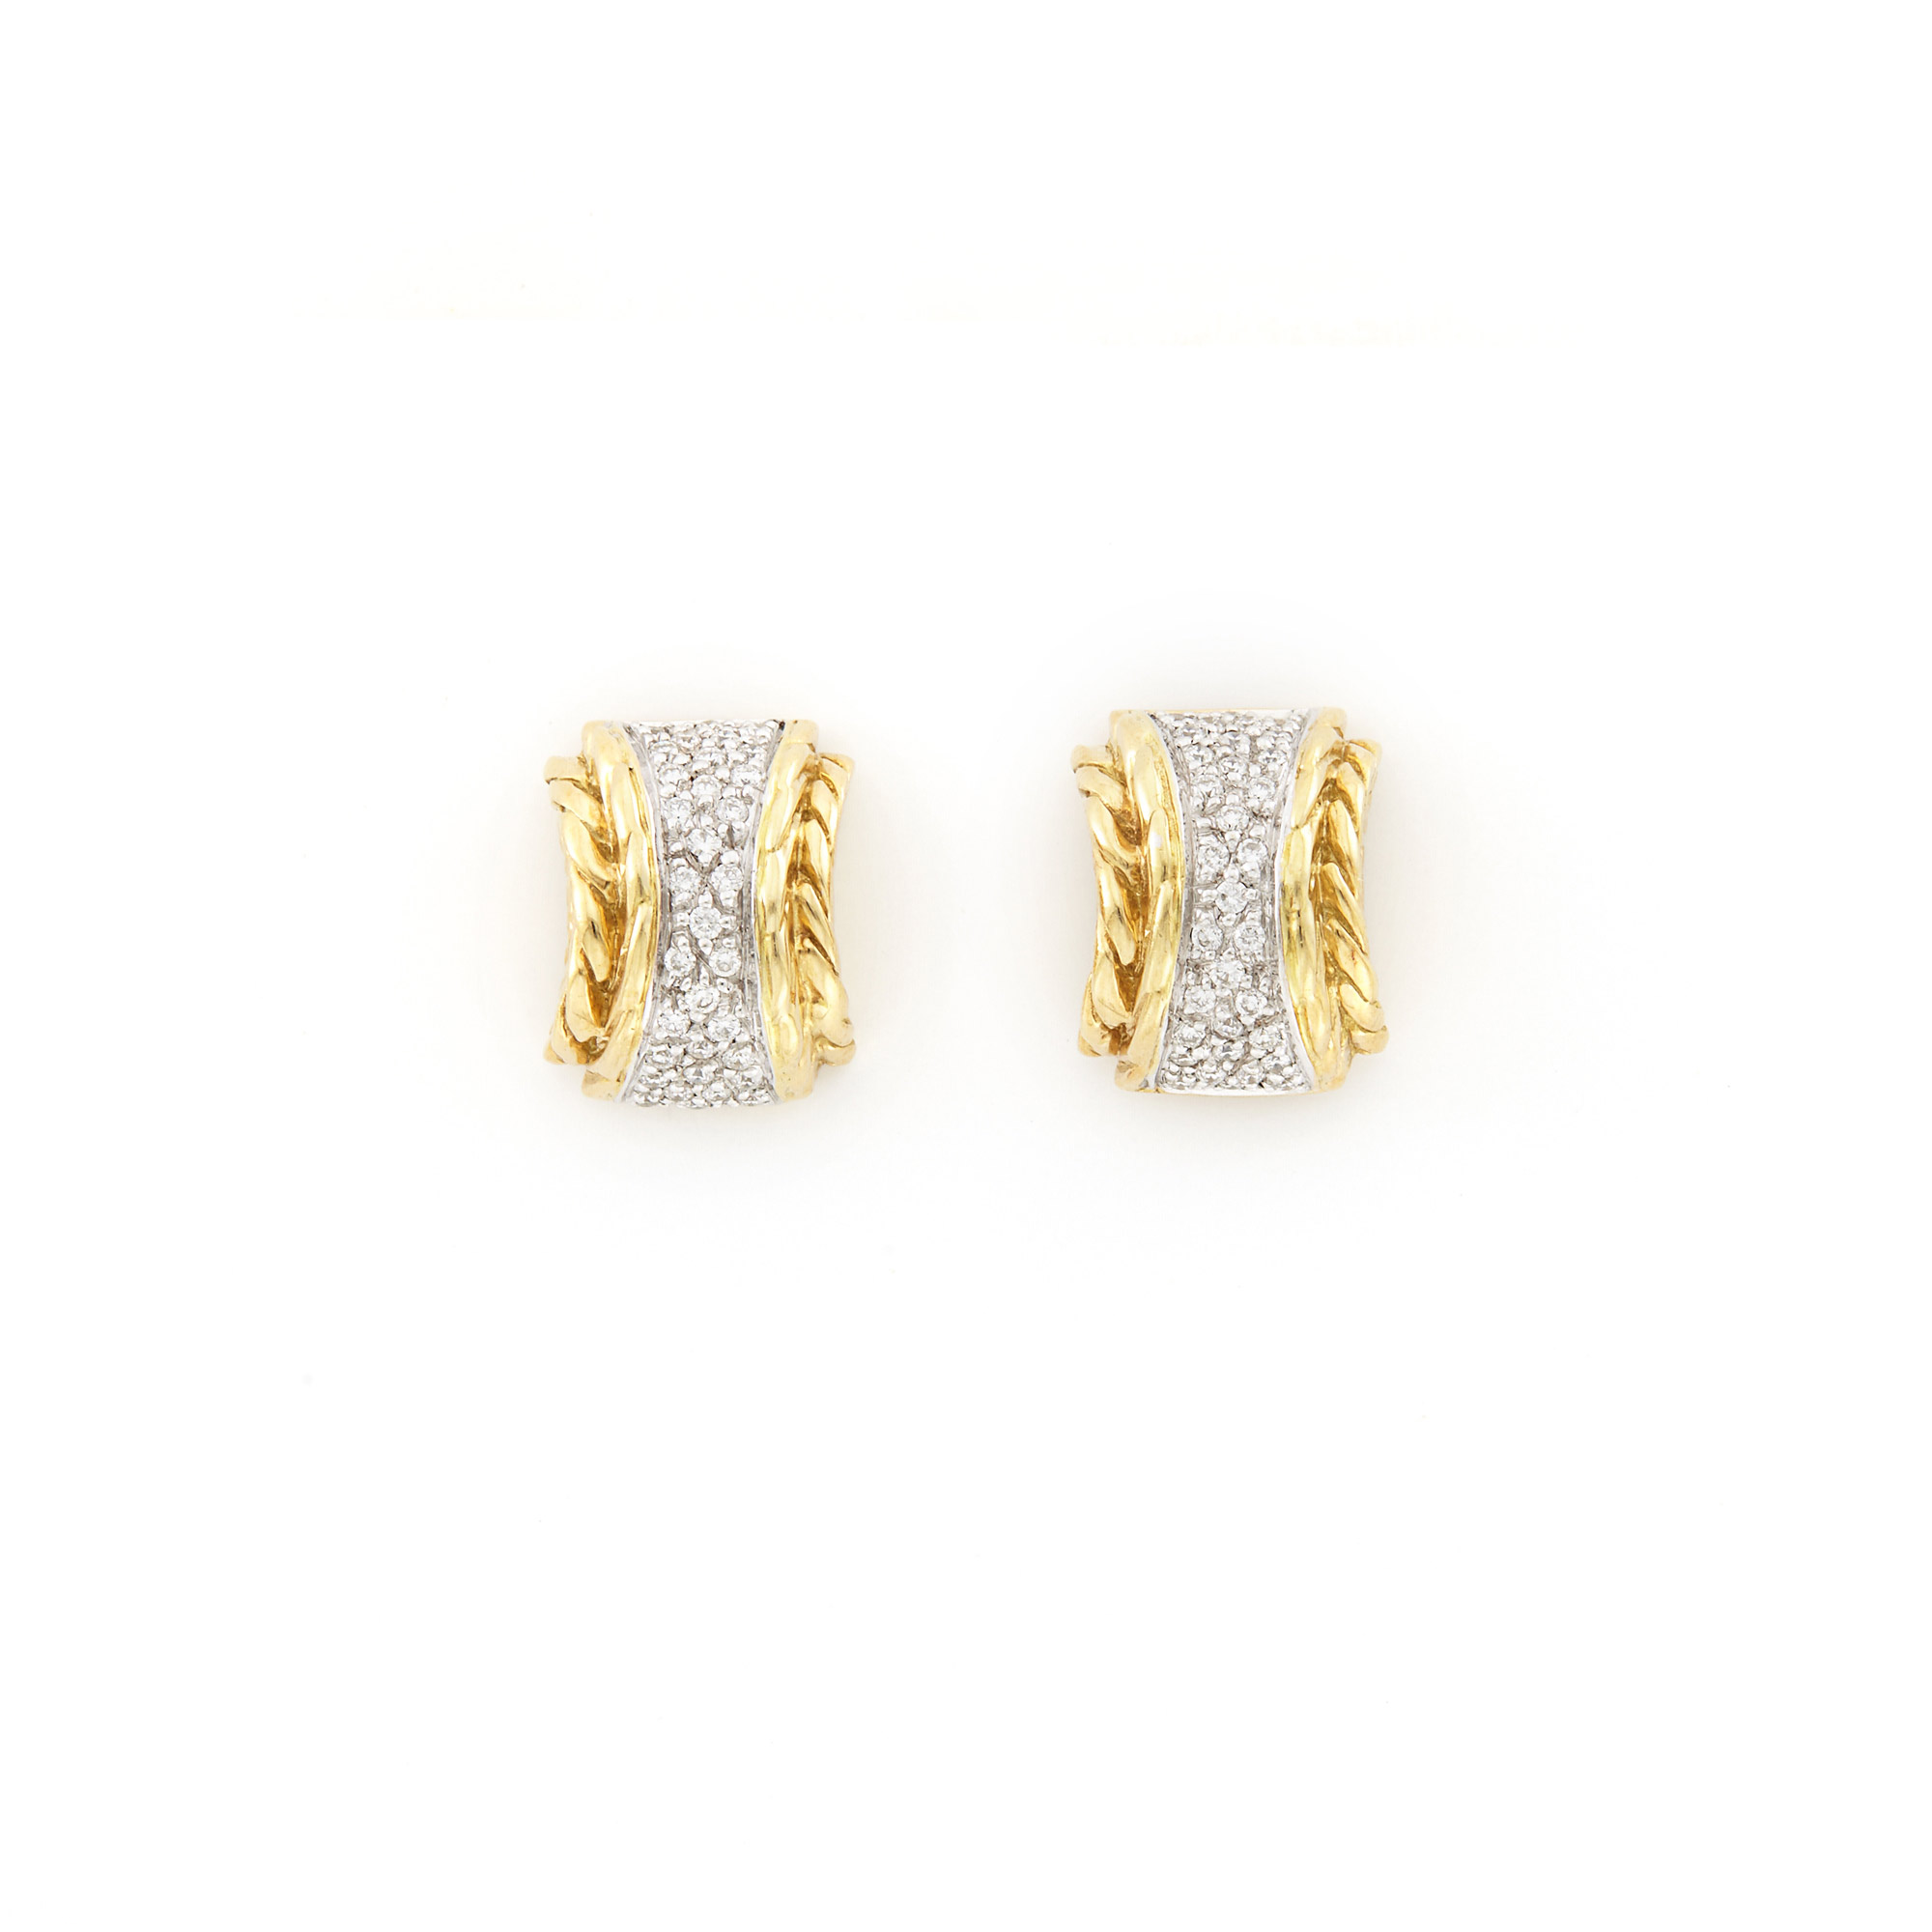 Lot image - Pair of Gold and Diamond Earrings, John Hardy